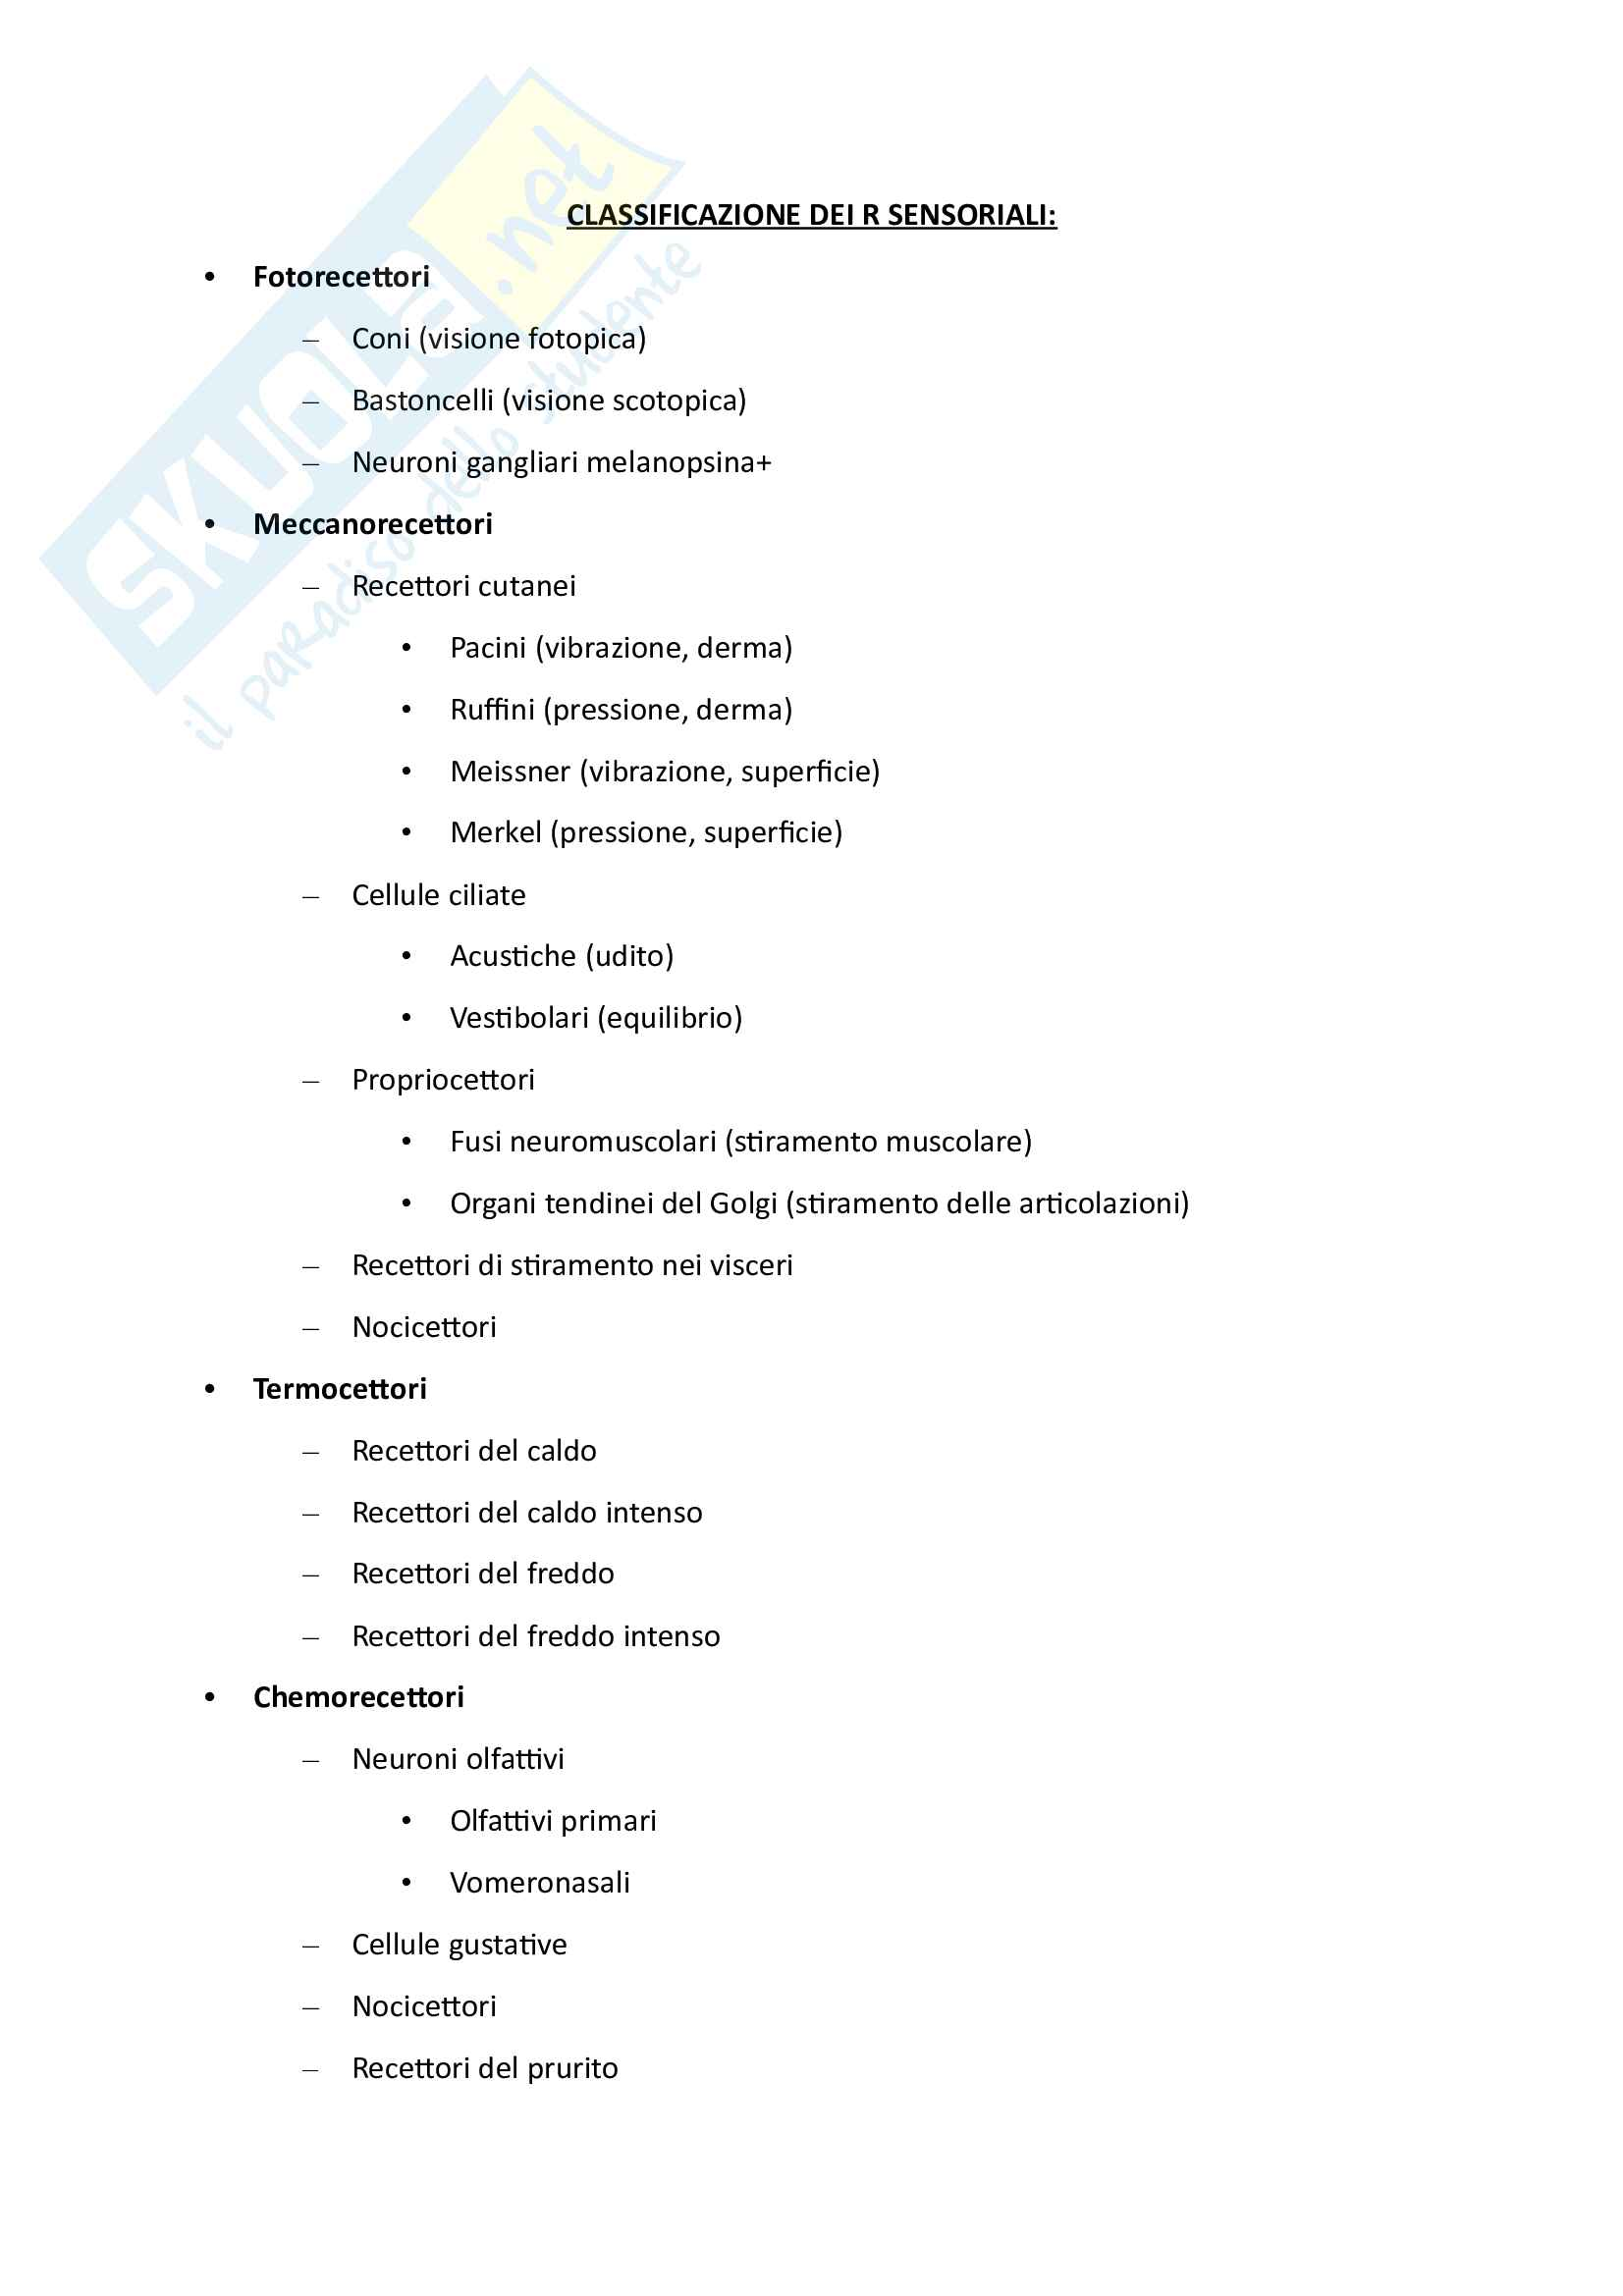 Fisiologia 1 Pag. 21